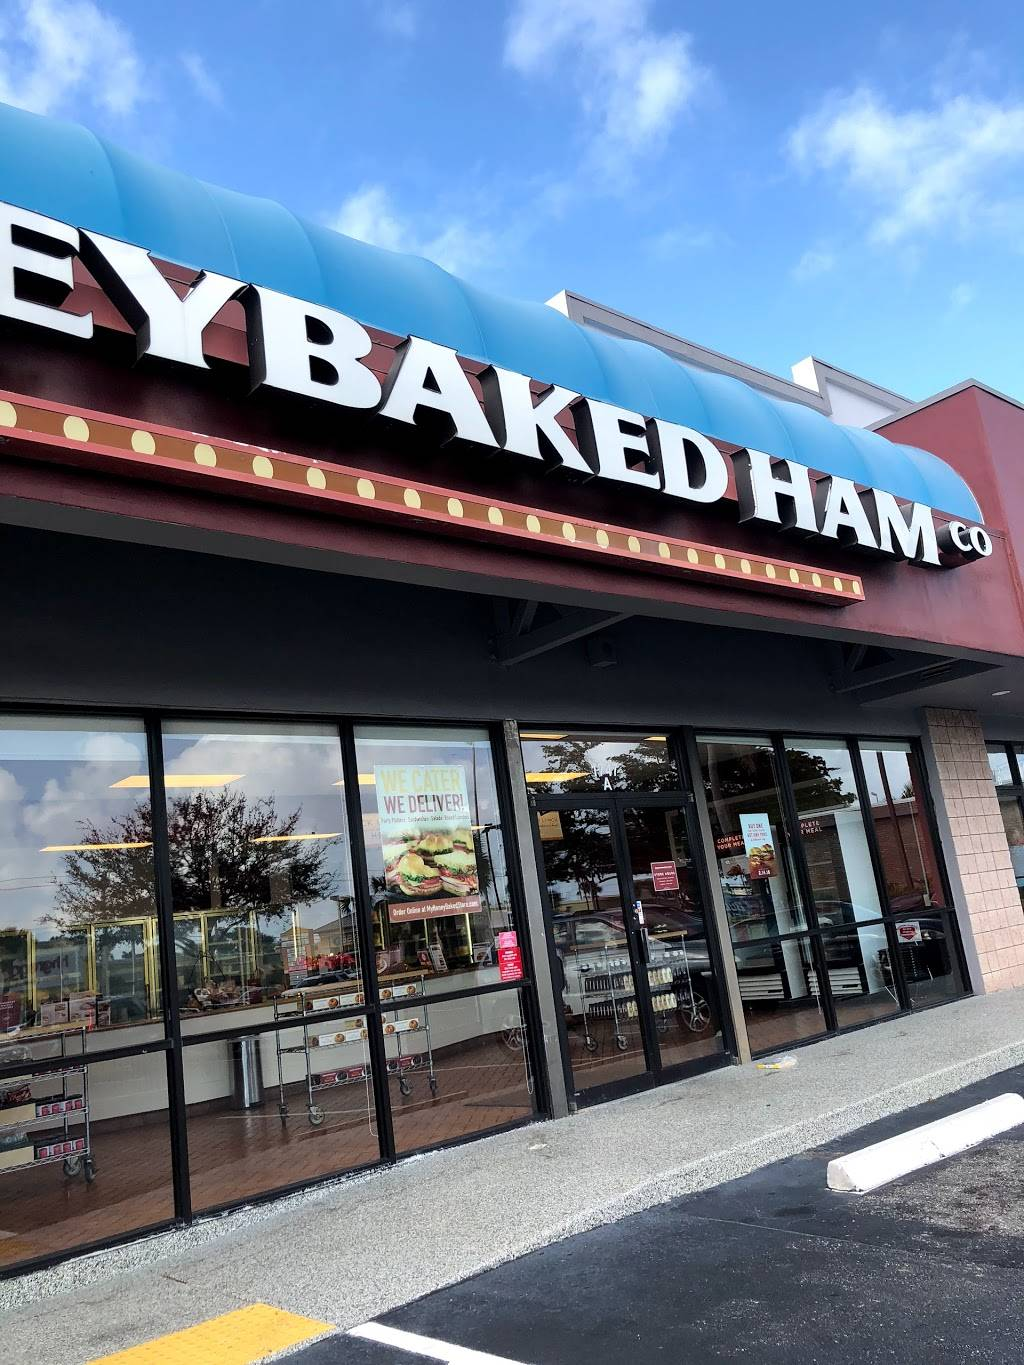 The Honey Baked Ham Company | meal takeaway | 1747 N Federal Hwy, Fort Lauderdale, FL 33305, USA | 9545632331 OR +1 954-563-2331